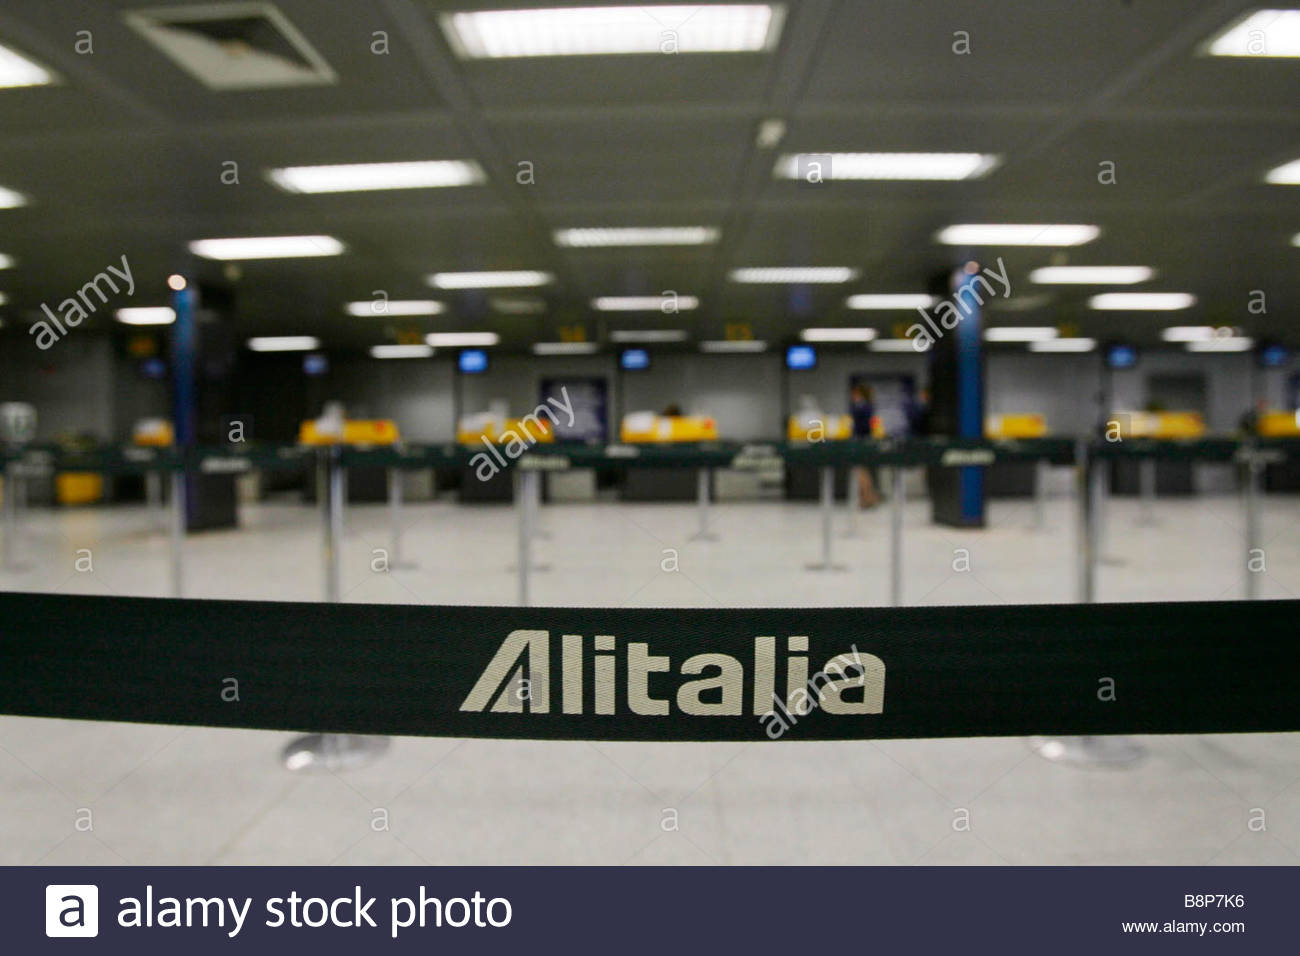 firts day for the new alitalia airline'milano-linate 13-01-2009'photo alex-itria/markanews - Stock Image